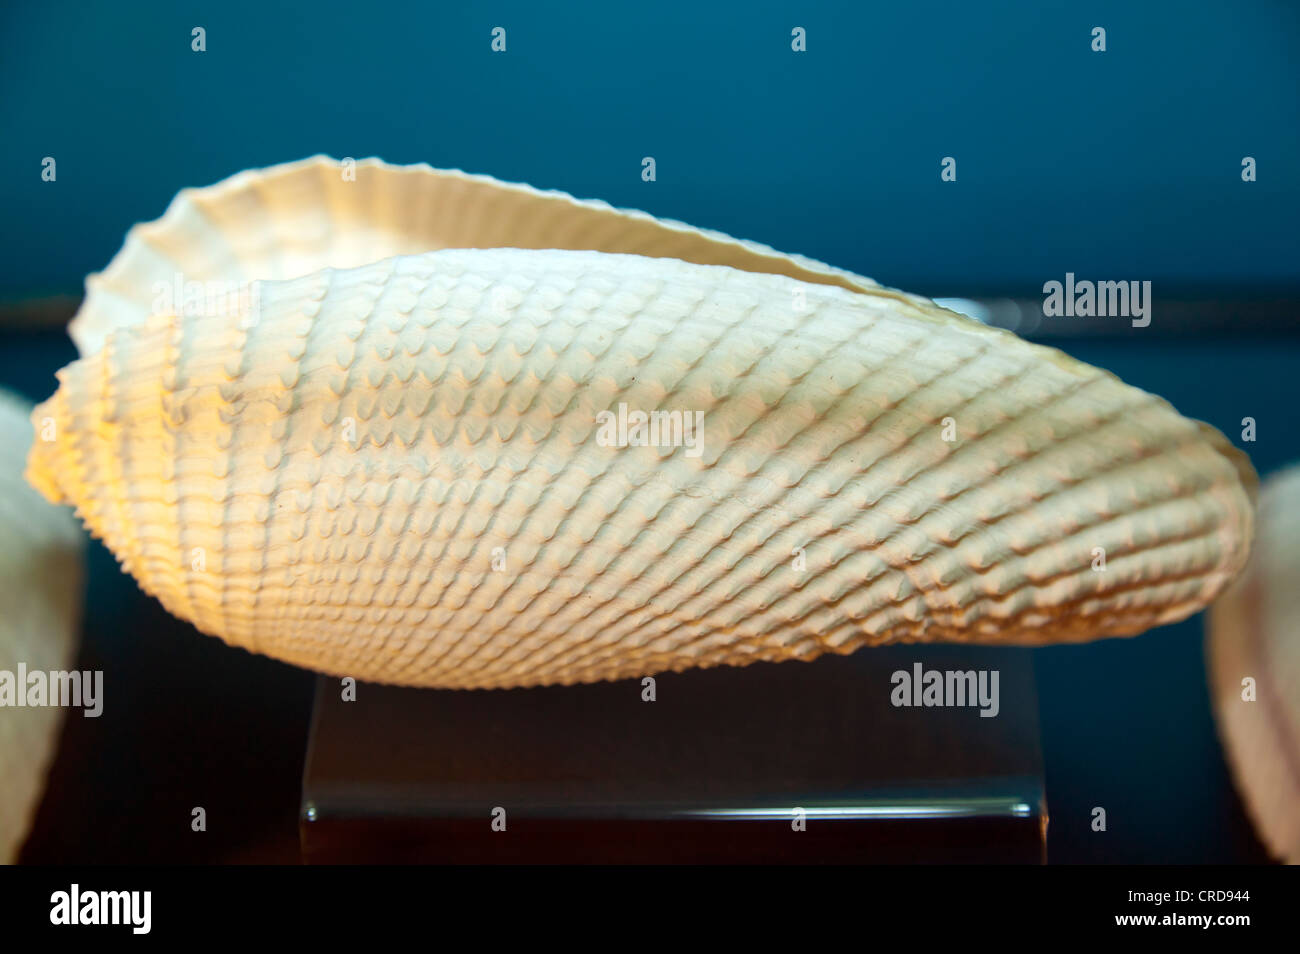 Close-up of a marine mollusk shell - Stock Image